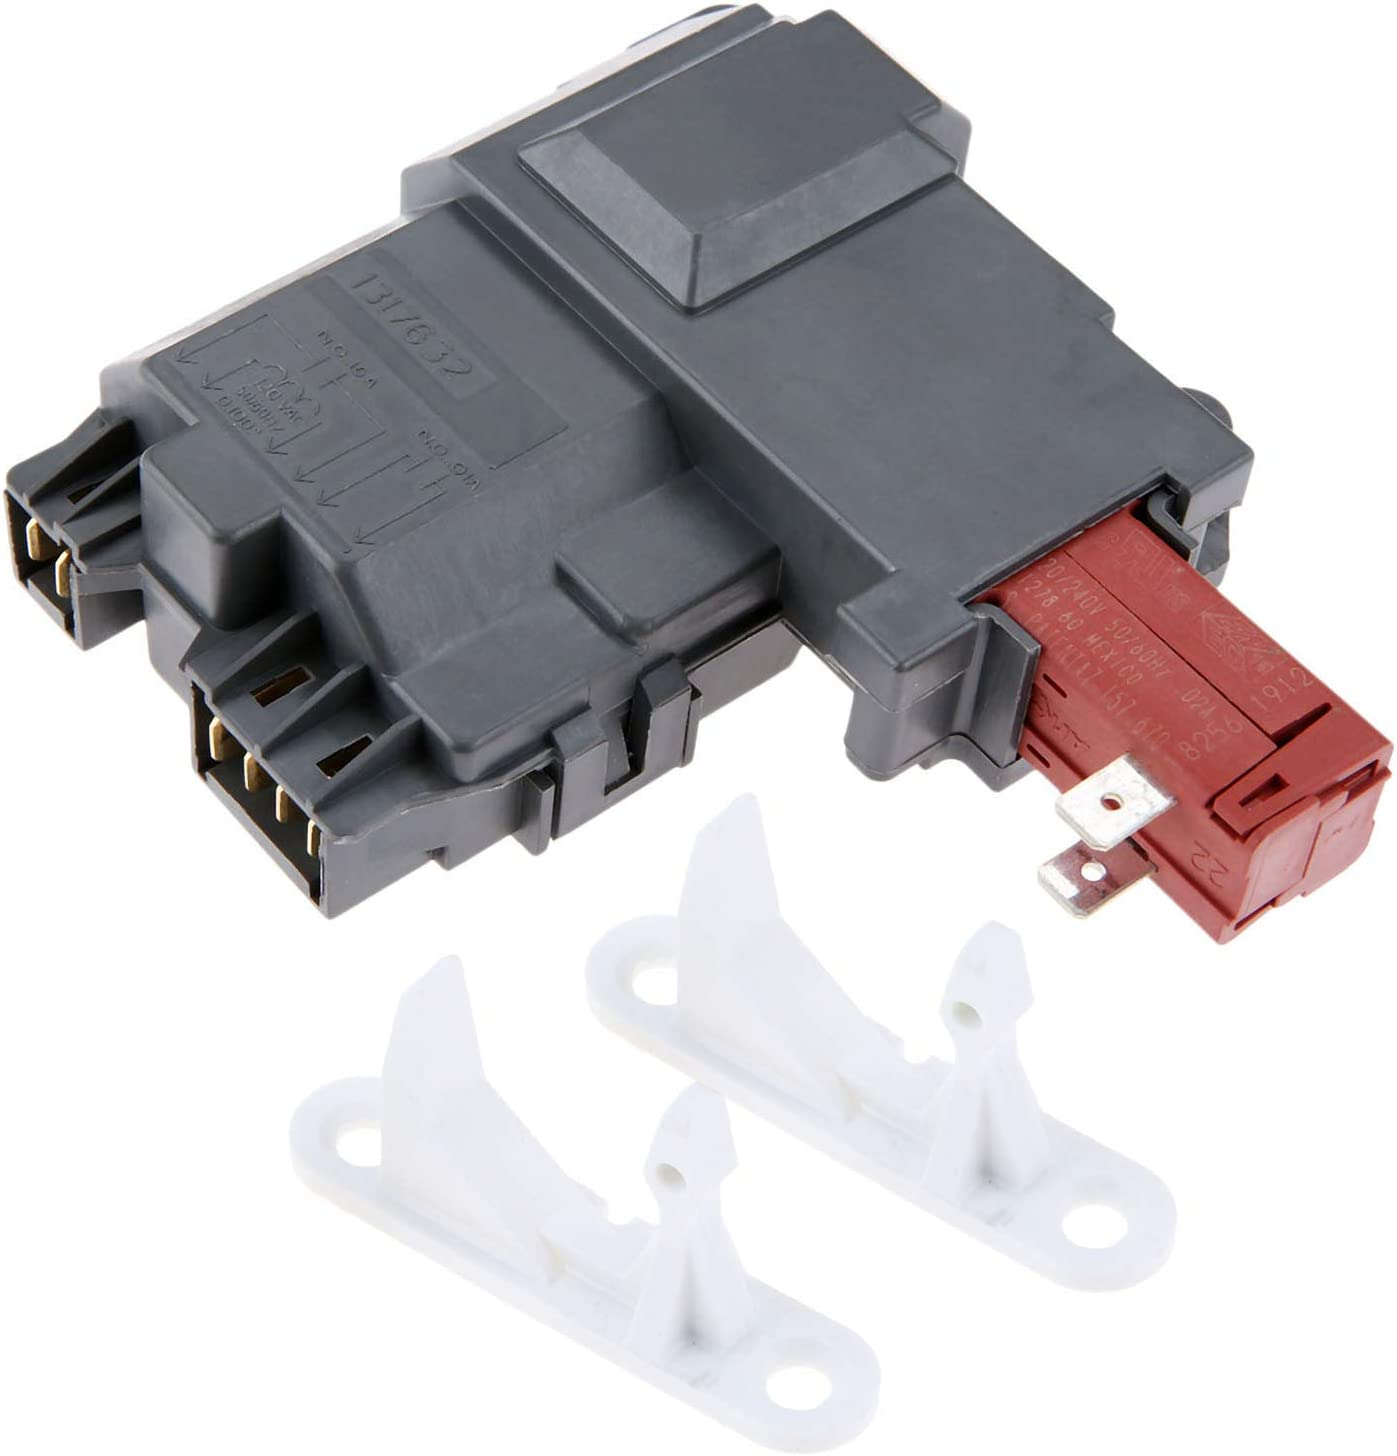 131763202 Washer Door Lock Switch Assembly, Replace # 131269400, 131763200, AH2367737 & 131763310 Door Striker, Replace # 1032664, 131763300, AP3580441, Compatible with Frigidaire Whirlpool Kenmore 61SMb1sRKFL